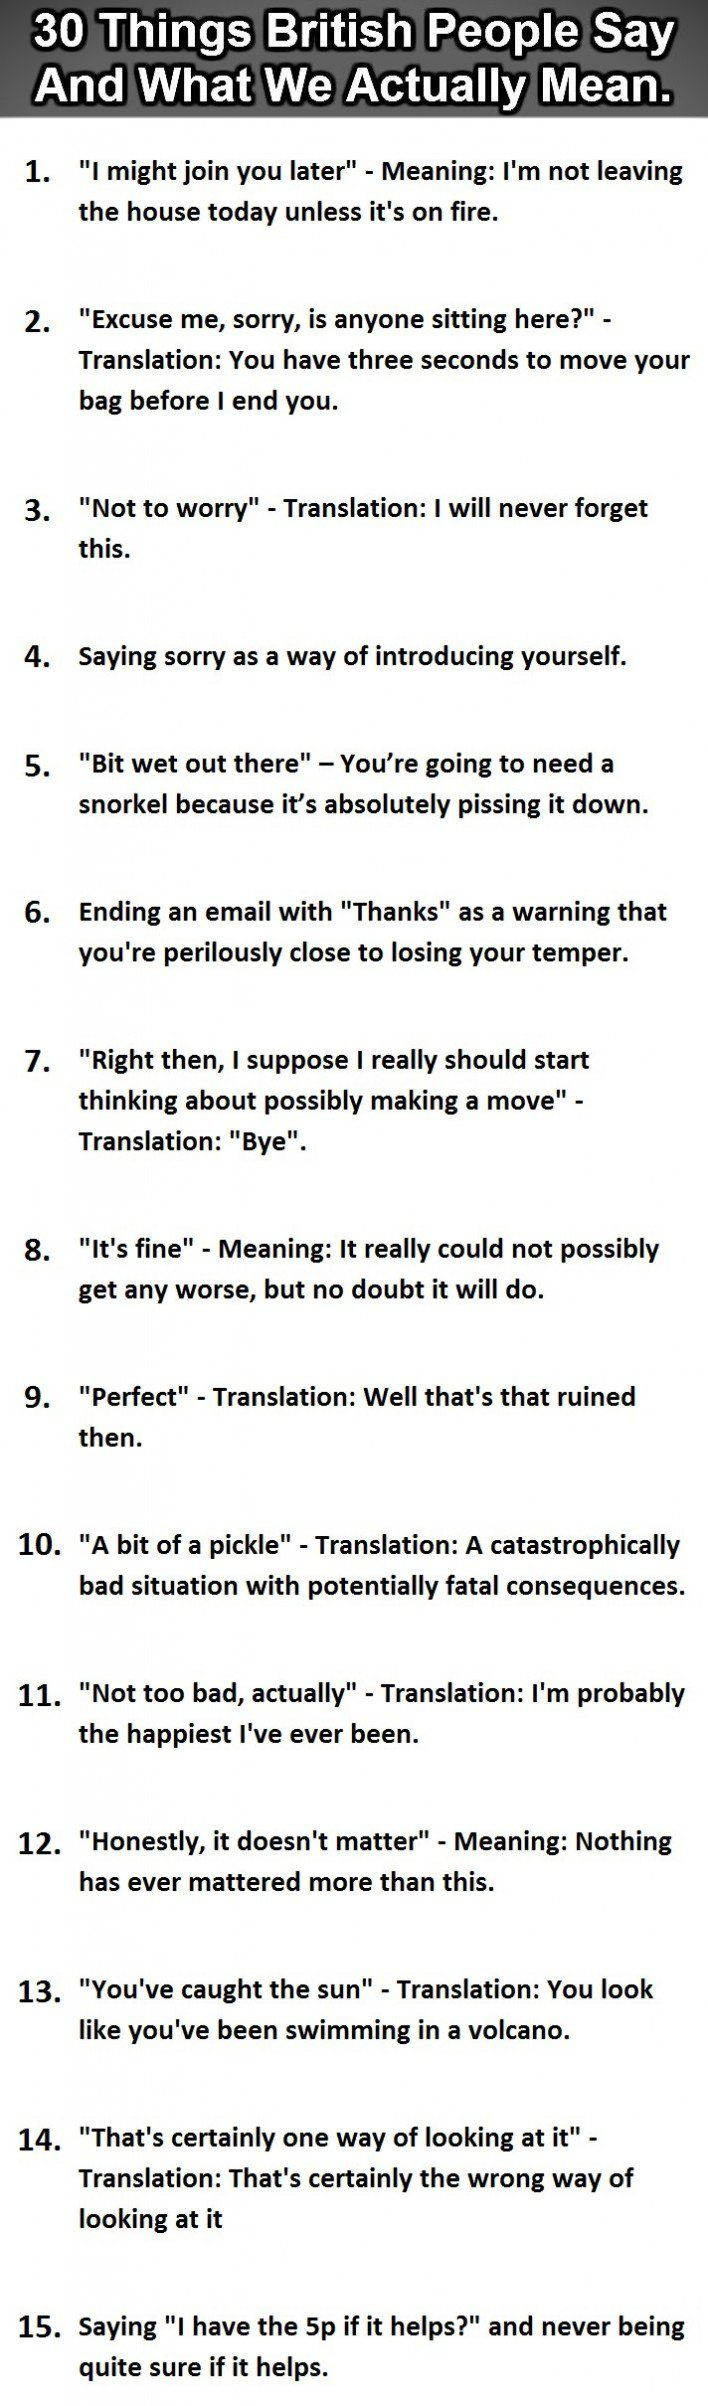 Brit Humour: 30 Things British People Say Vs What They Actually Mean - Graphic (Part 1)